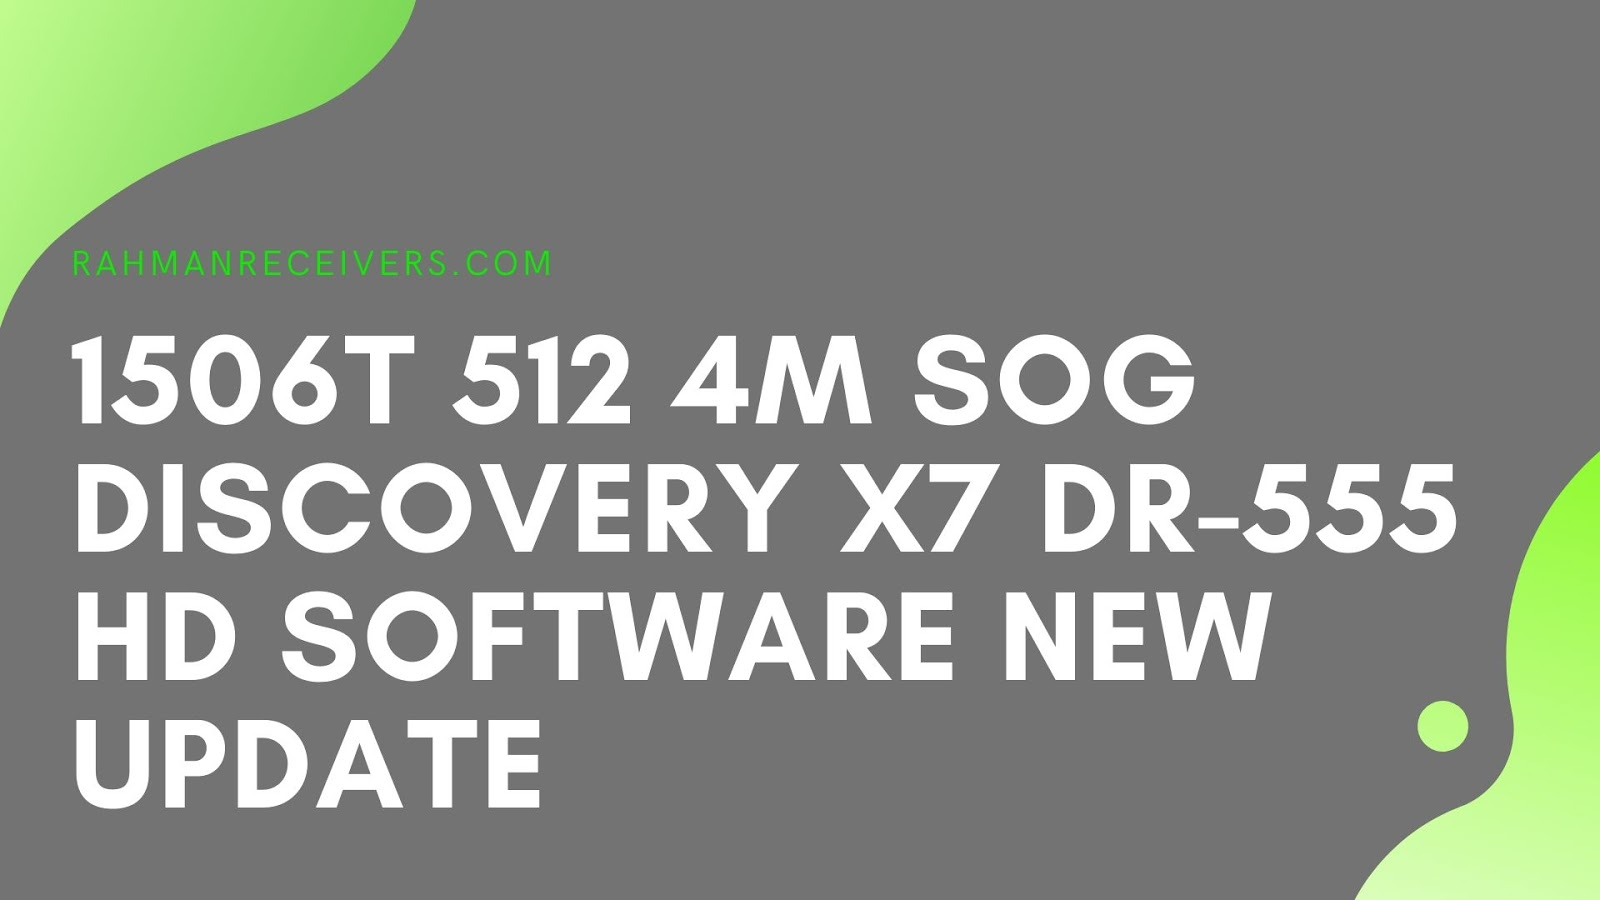 1506T 512 4M SOG DISCOVERY X7 DR-555 HD SOFTWARE NEW UPDATE